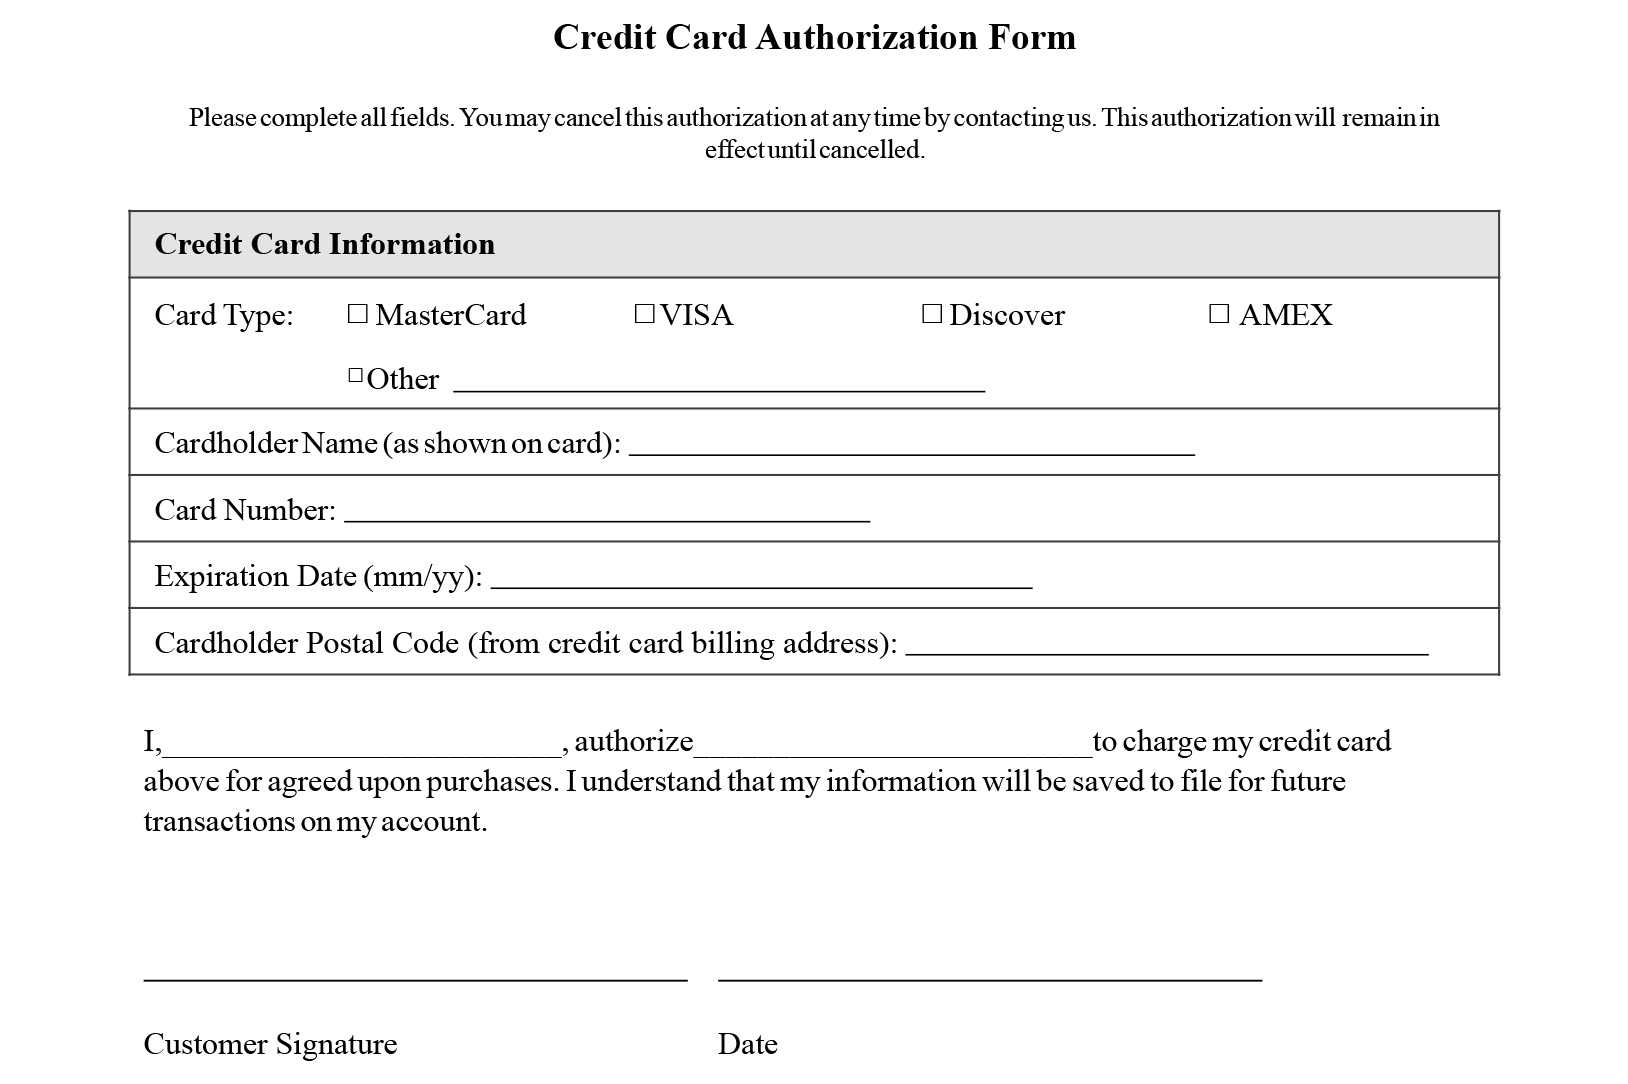 Credit Card Authorization Form Templates [Download] In Credit Card Authorization Form Template Word